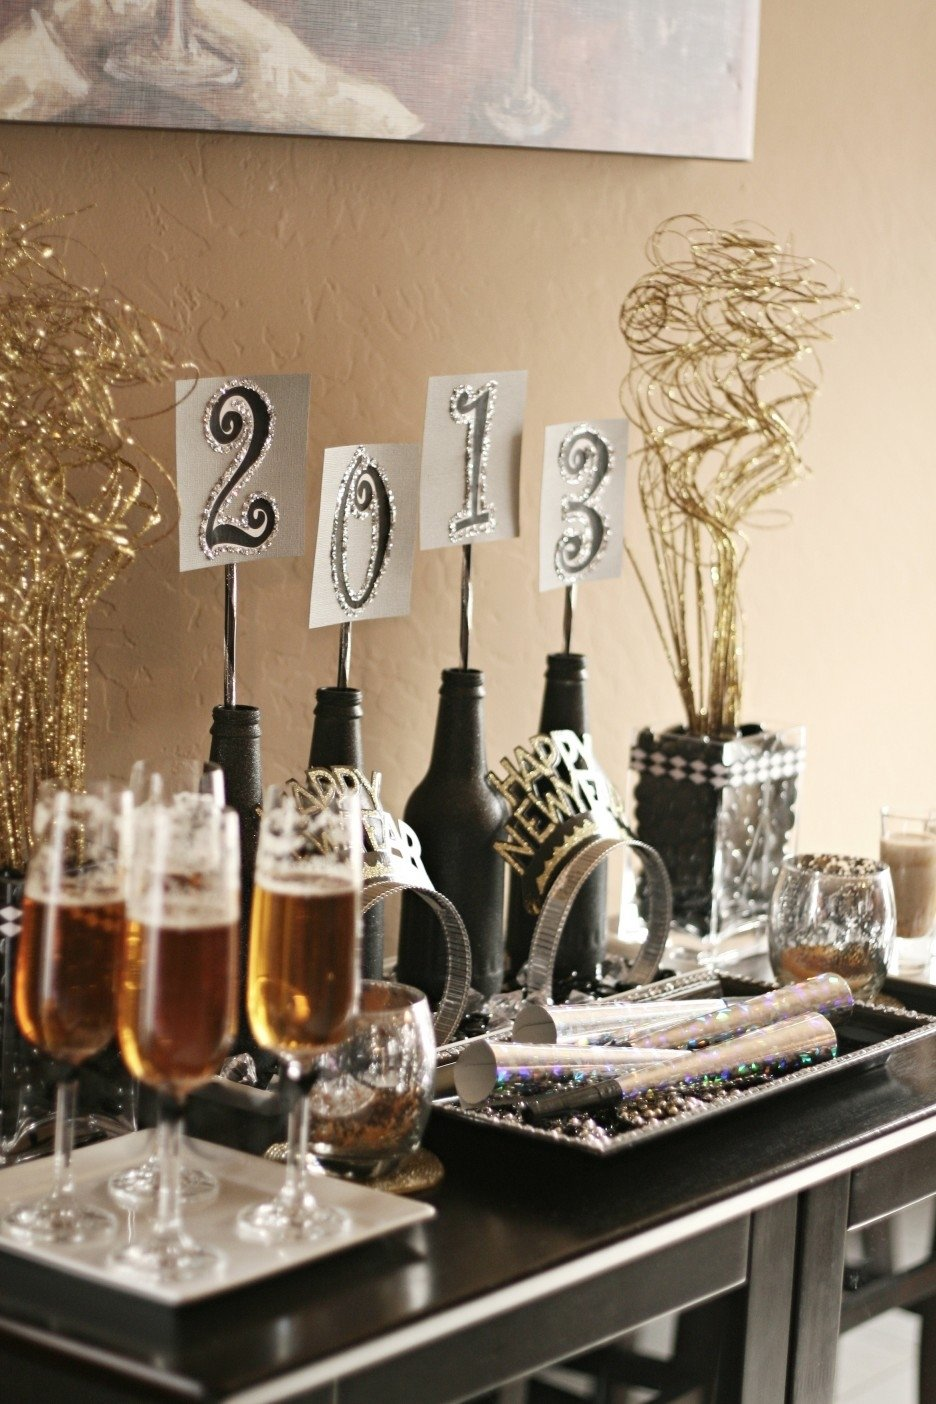 10 Great New Year Party Ideas At Home remarkable simple new year eve party deco establish exquisite bottle 2021